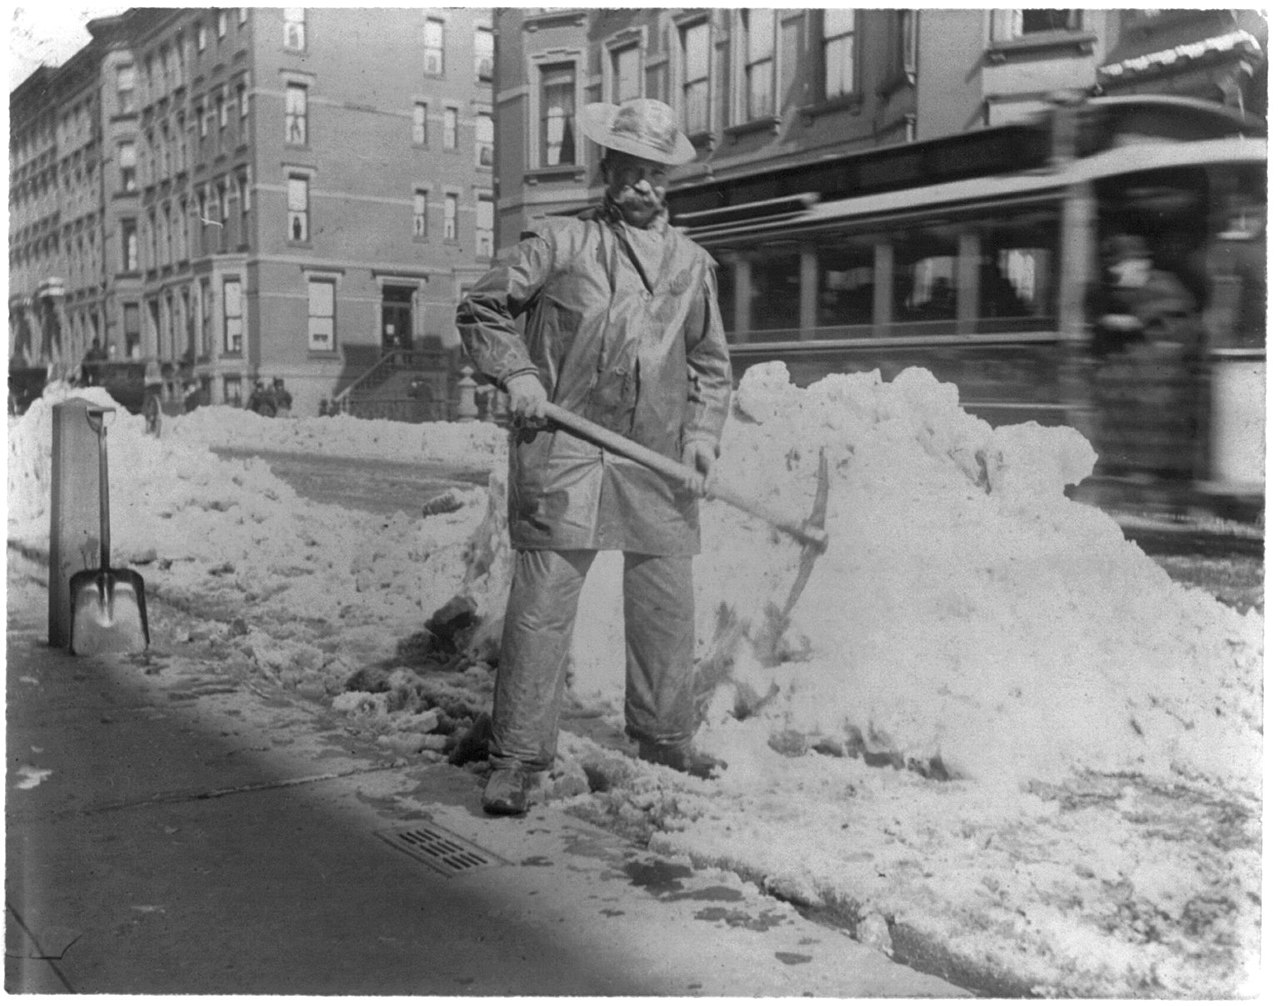 File:Street types of New York City- Street cleaner with pick ax standing in front of pile of snow LCCN2002699104.jpg